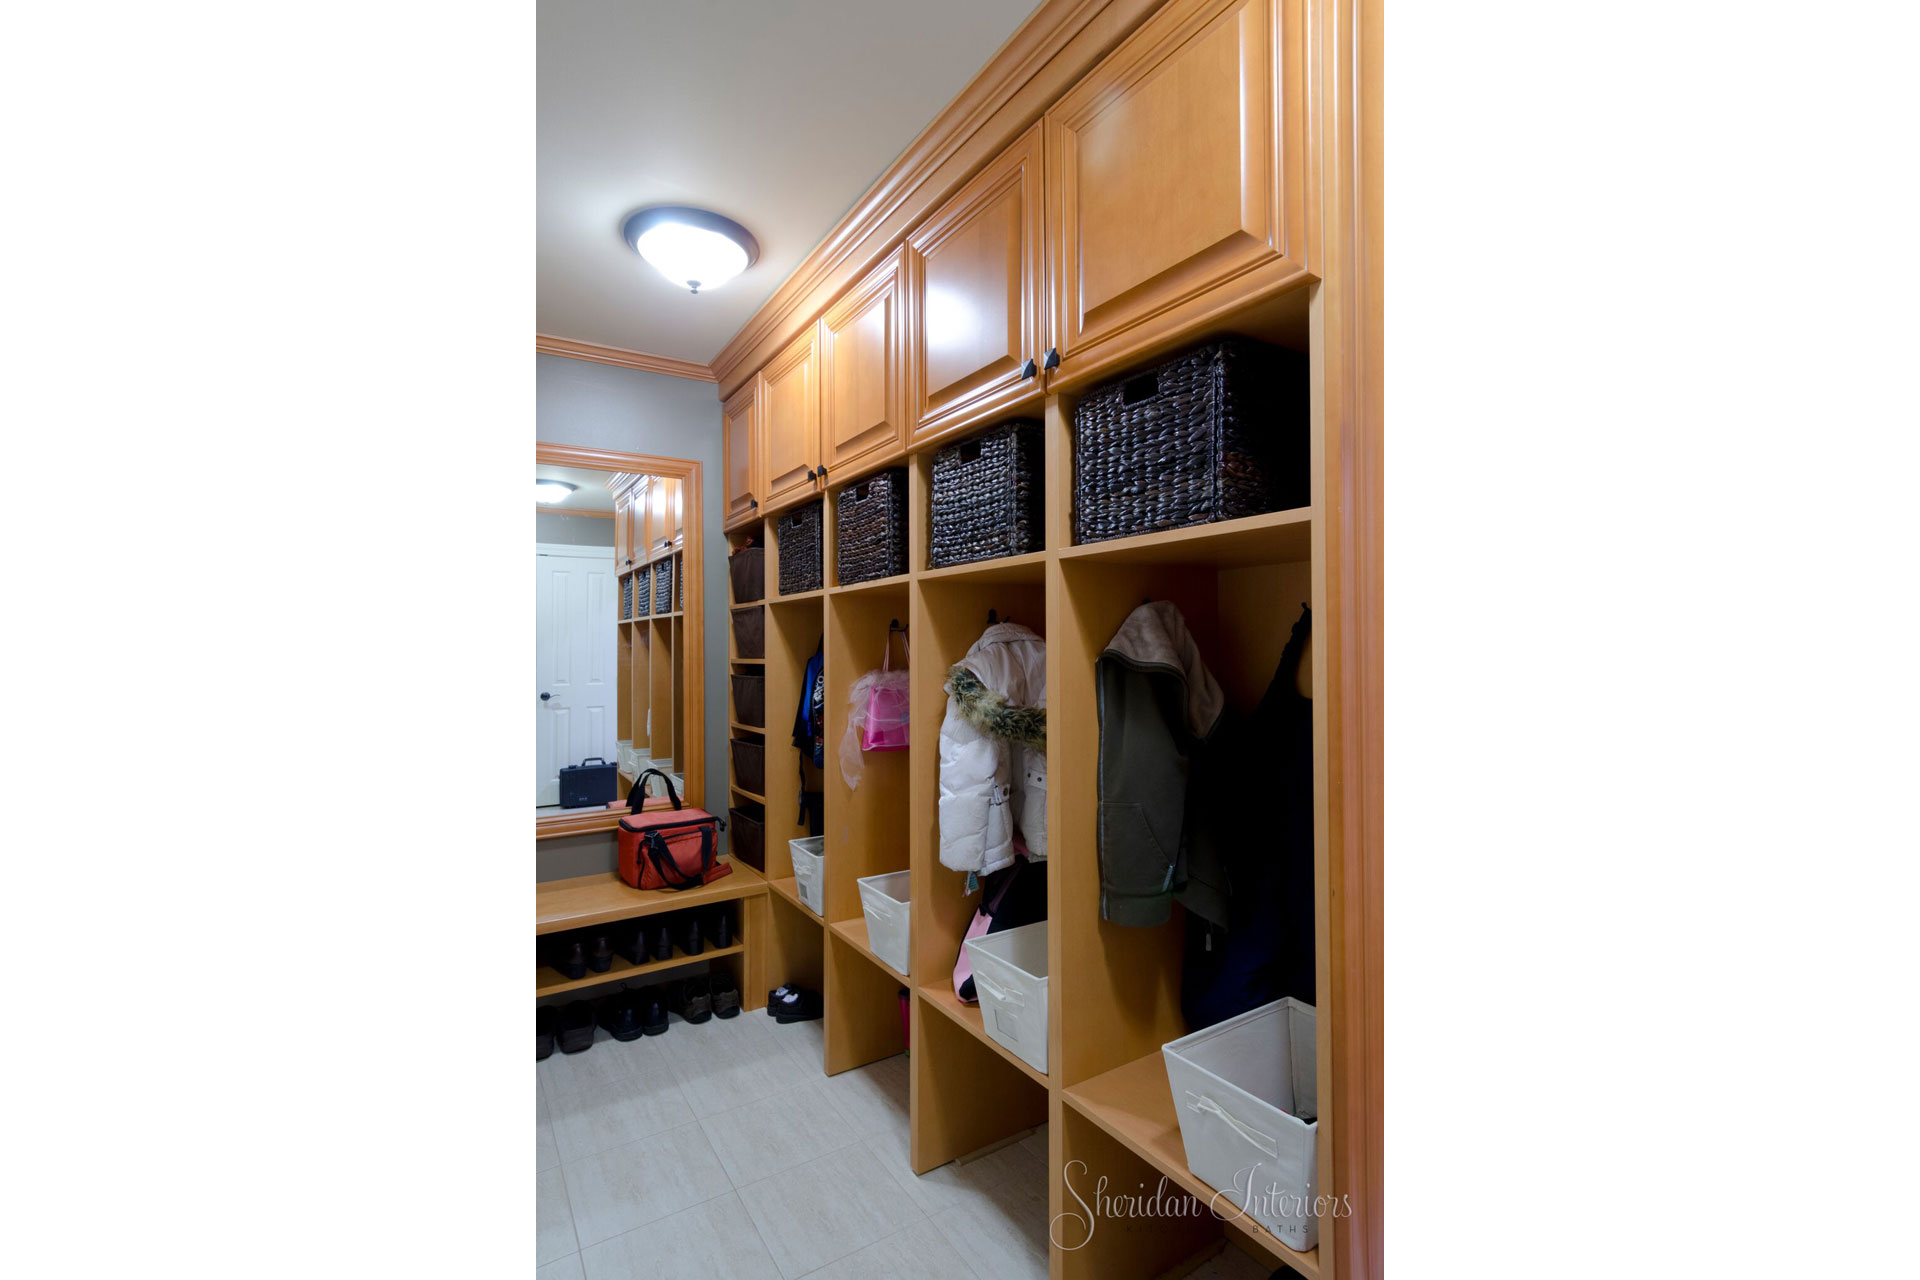 mudroom design, interior designer cornwall, interior design ottawa, Mudroom with Cubbies - Sheridan Interiors, sheridan interiors kitchens and baths